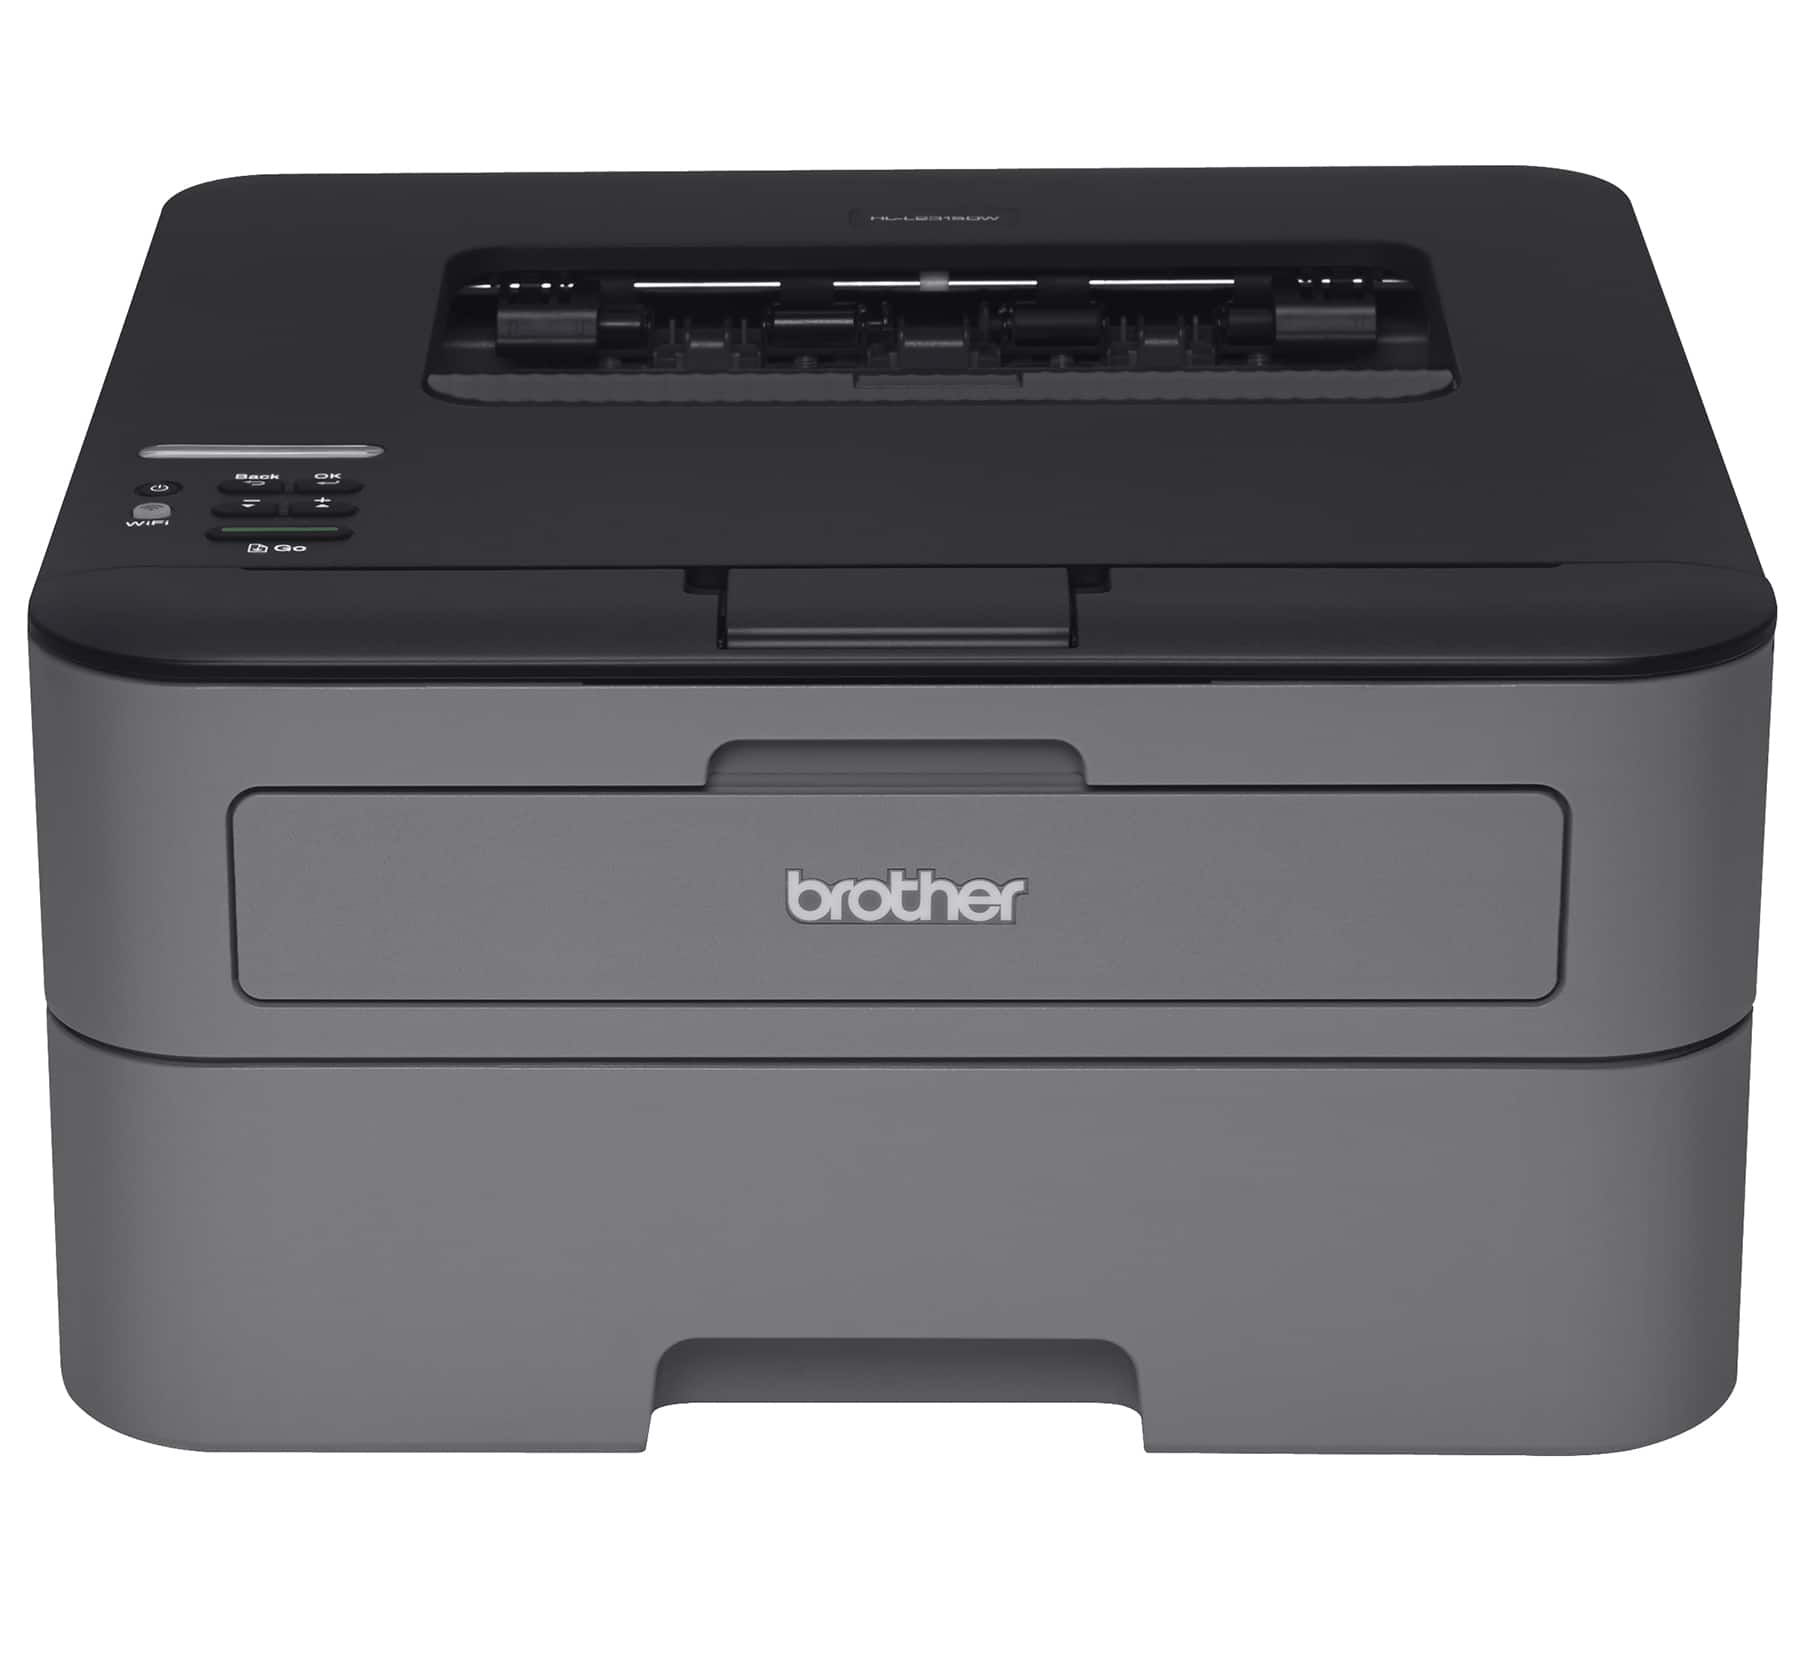 Brother Refurbished Compact Monochrome Laser Printer, HL-L2315DW, Wireless Printing, Duplex Two-Sided Printing $69.99